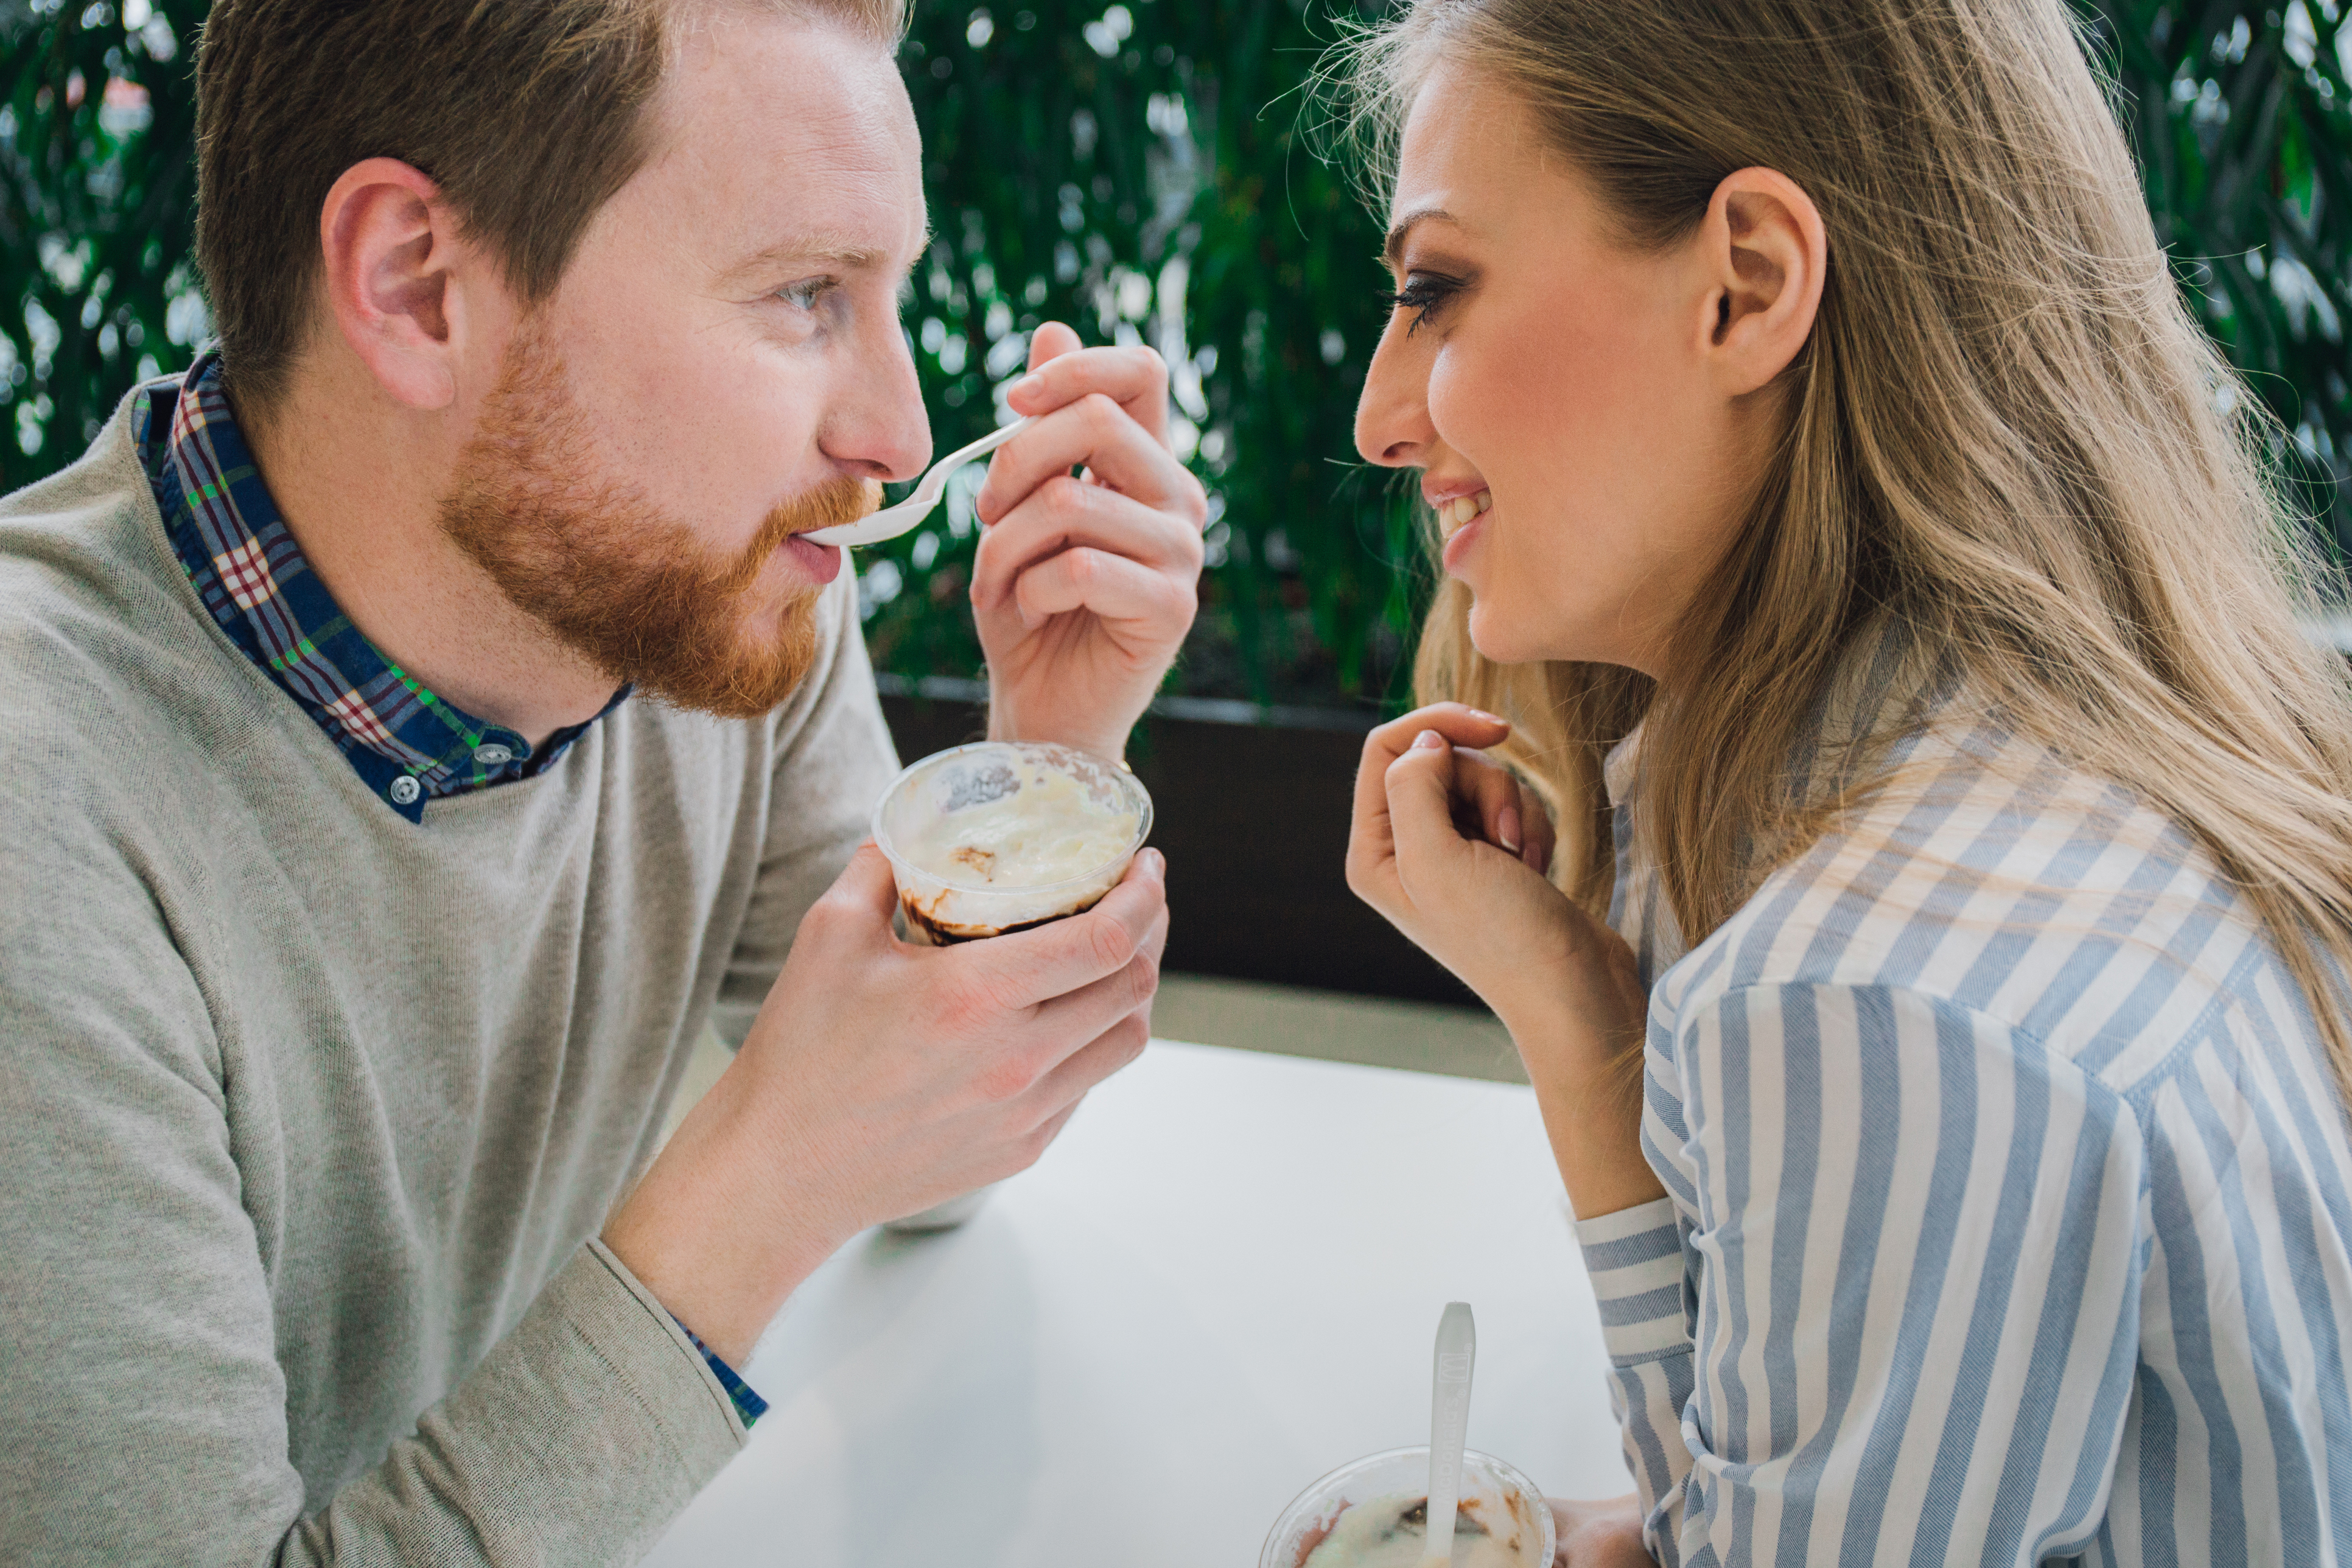 Online Dating: How To Get Over First Date Nerves?